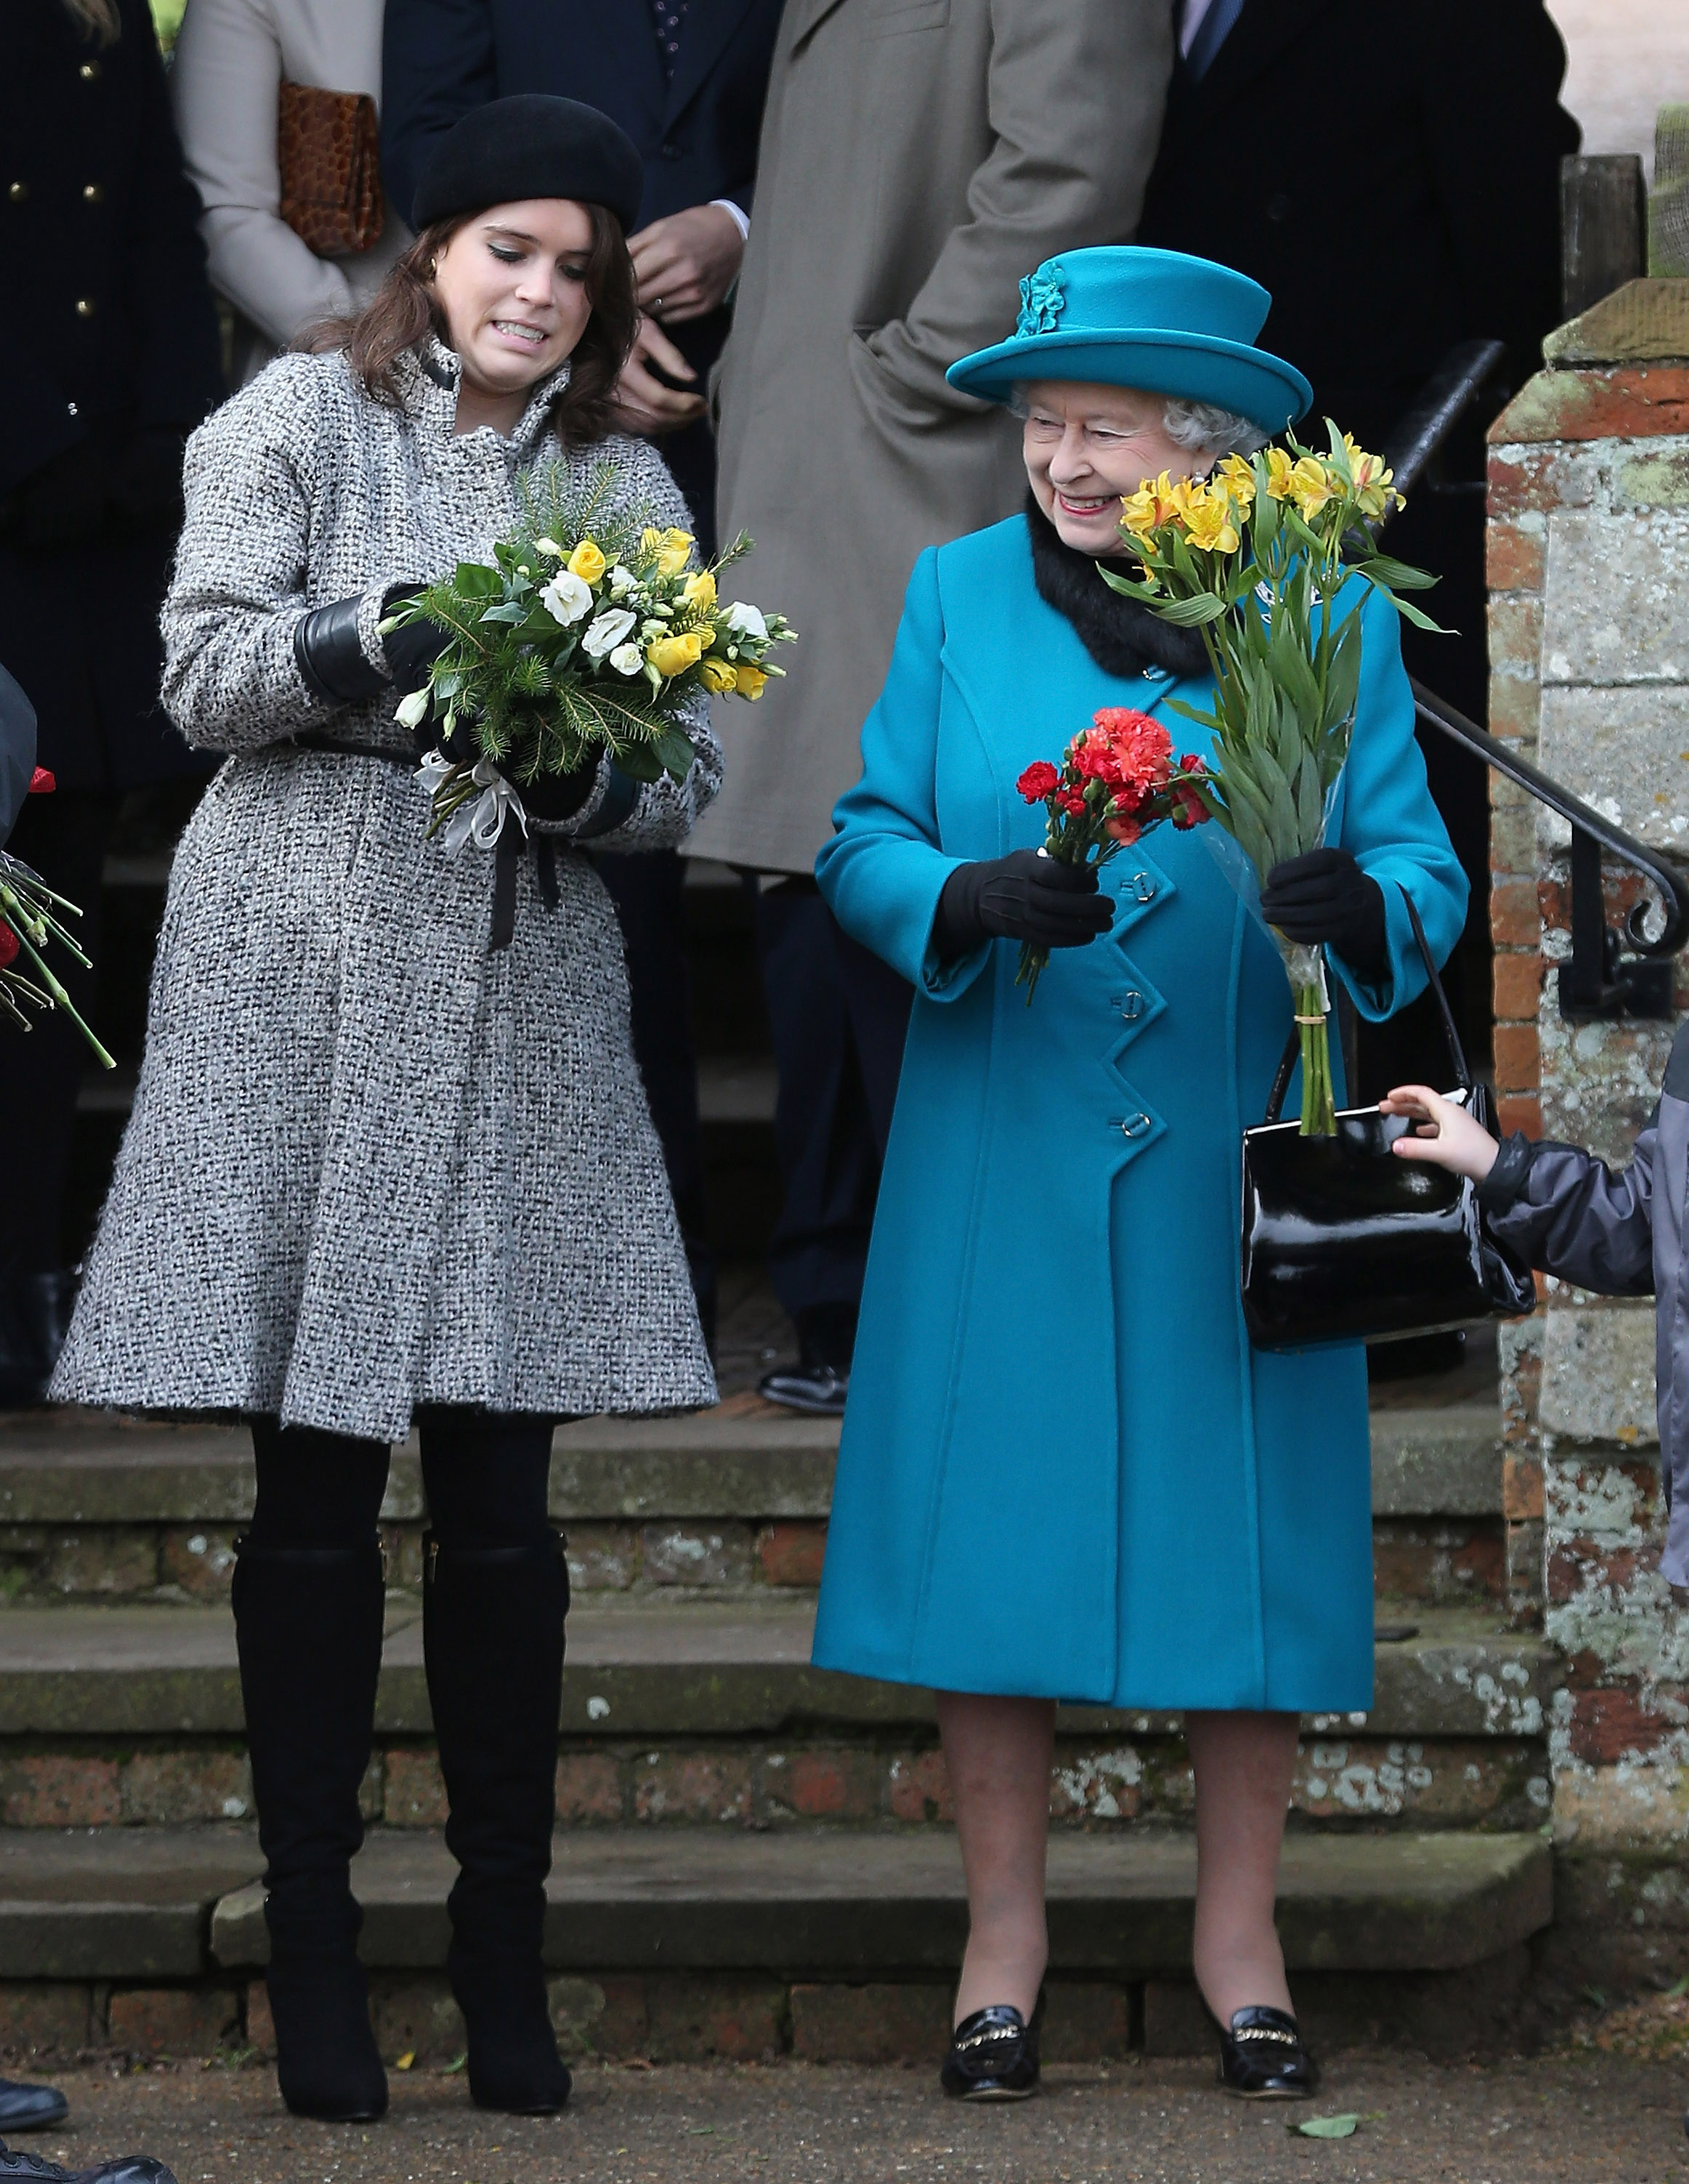 Queen Elizabeth II hands flowers to Princess Eugenie as they leave St Mary Magdalene Church after attending the traditional Christmas Day church service on December 25, 2012 in Sandringham, near King's Lynn, England.